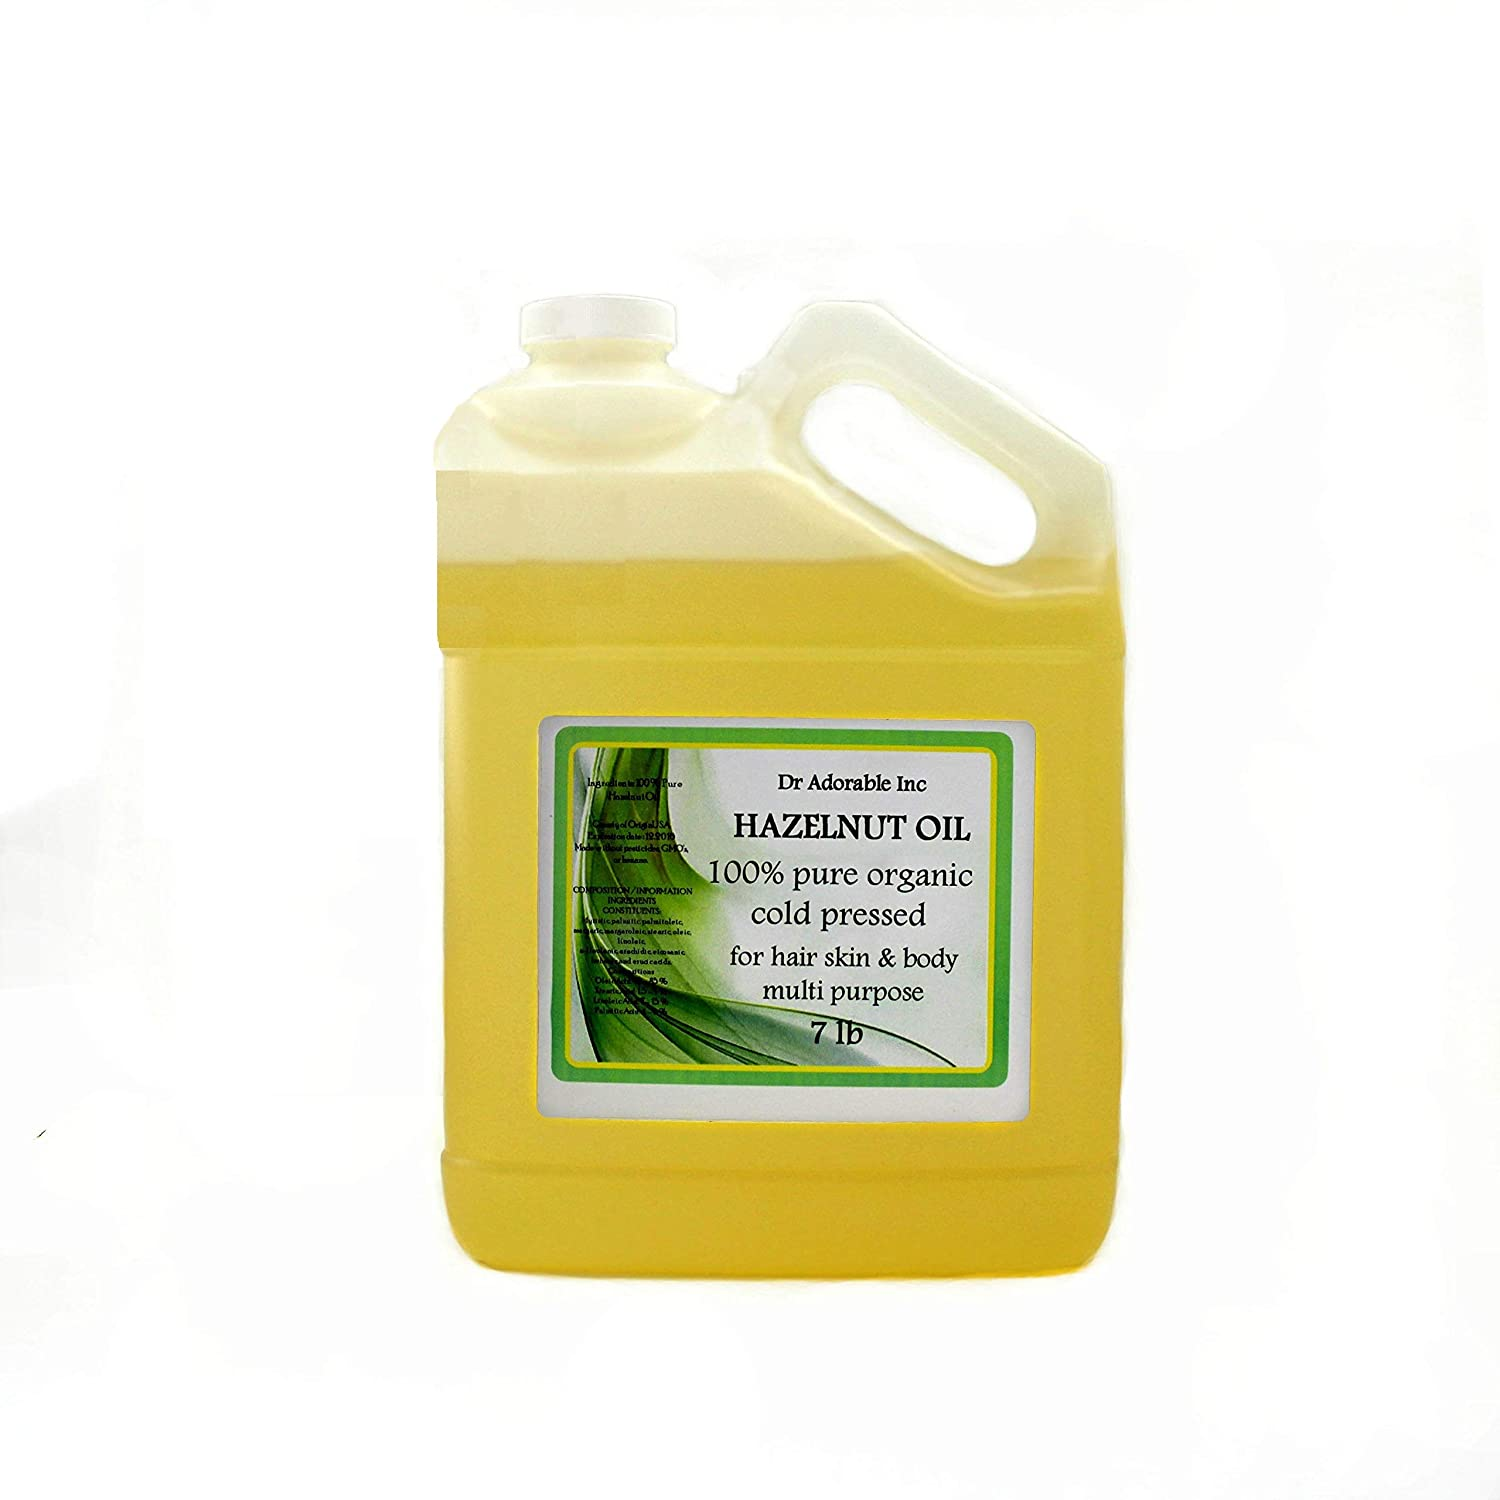 7 LB Hazelnut Oil Outstanding Organic by Dr.Adorable Same day shipping Pure Expeller Pressed